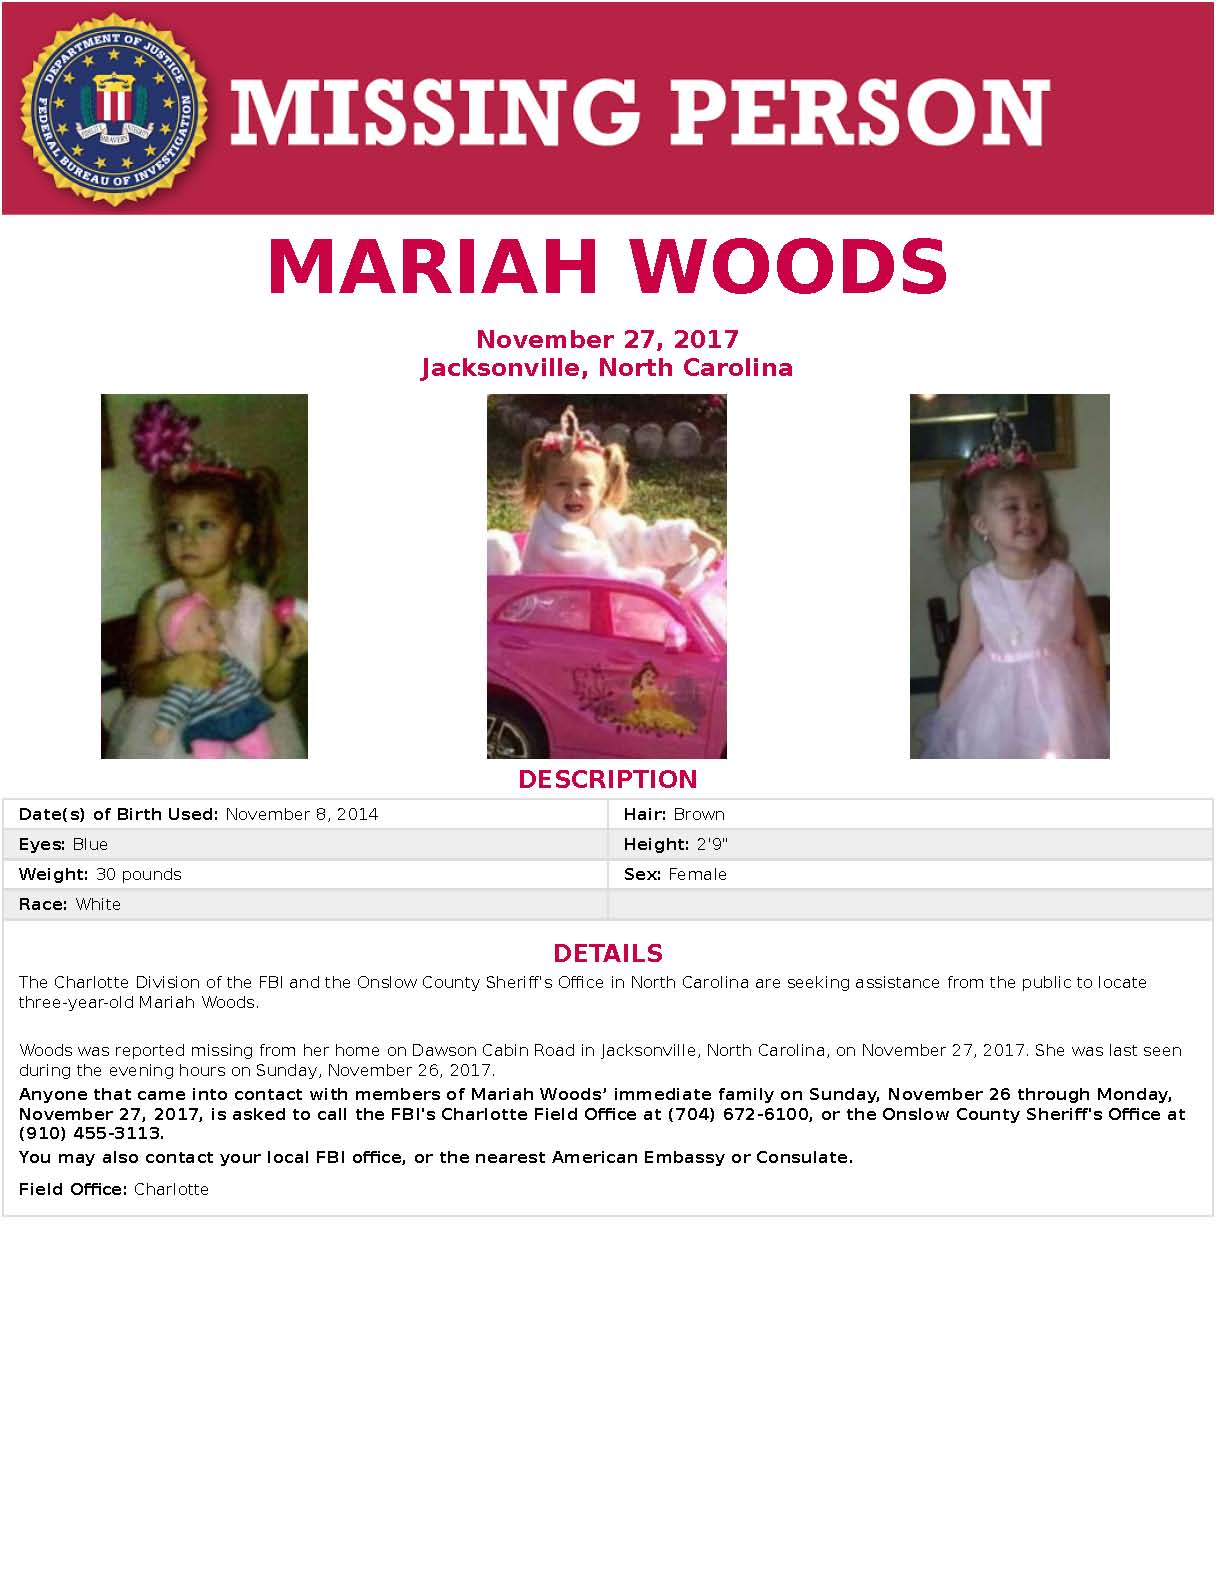 Intense search continues for Mariah Woods.  We know many of you want to help, we are working on plans for a volunteer search.  It will take a lot to organize, so please be patient.  Team Adam from the National Center for Missing & Exploited Children is here to assist. https://t.co/nhWqJvjF0k